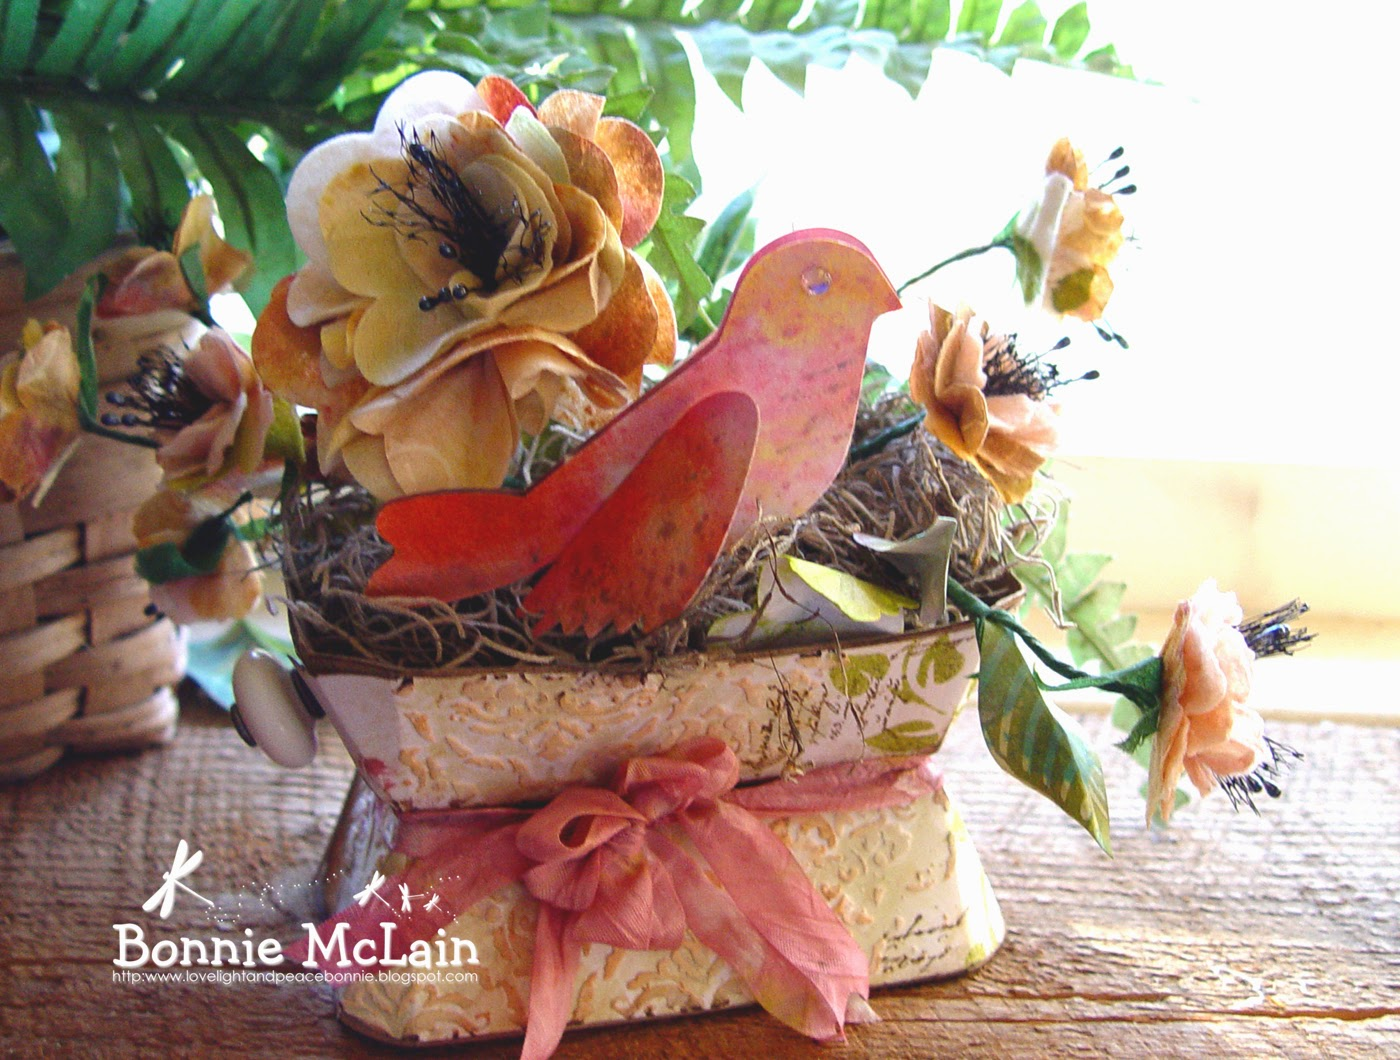 Featured Fan: Bonnie McLain